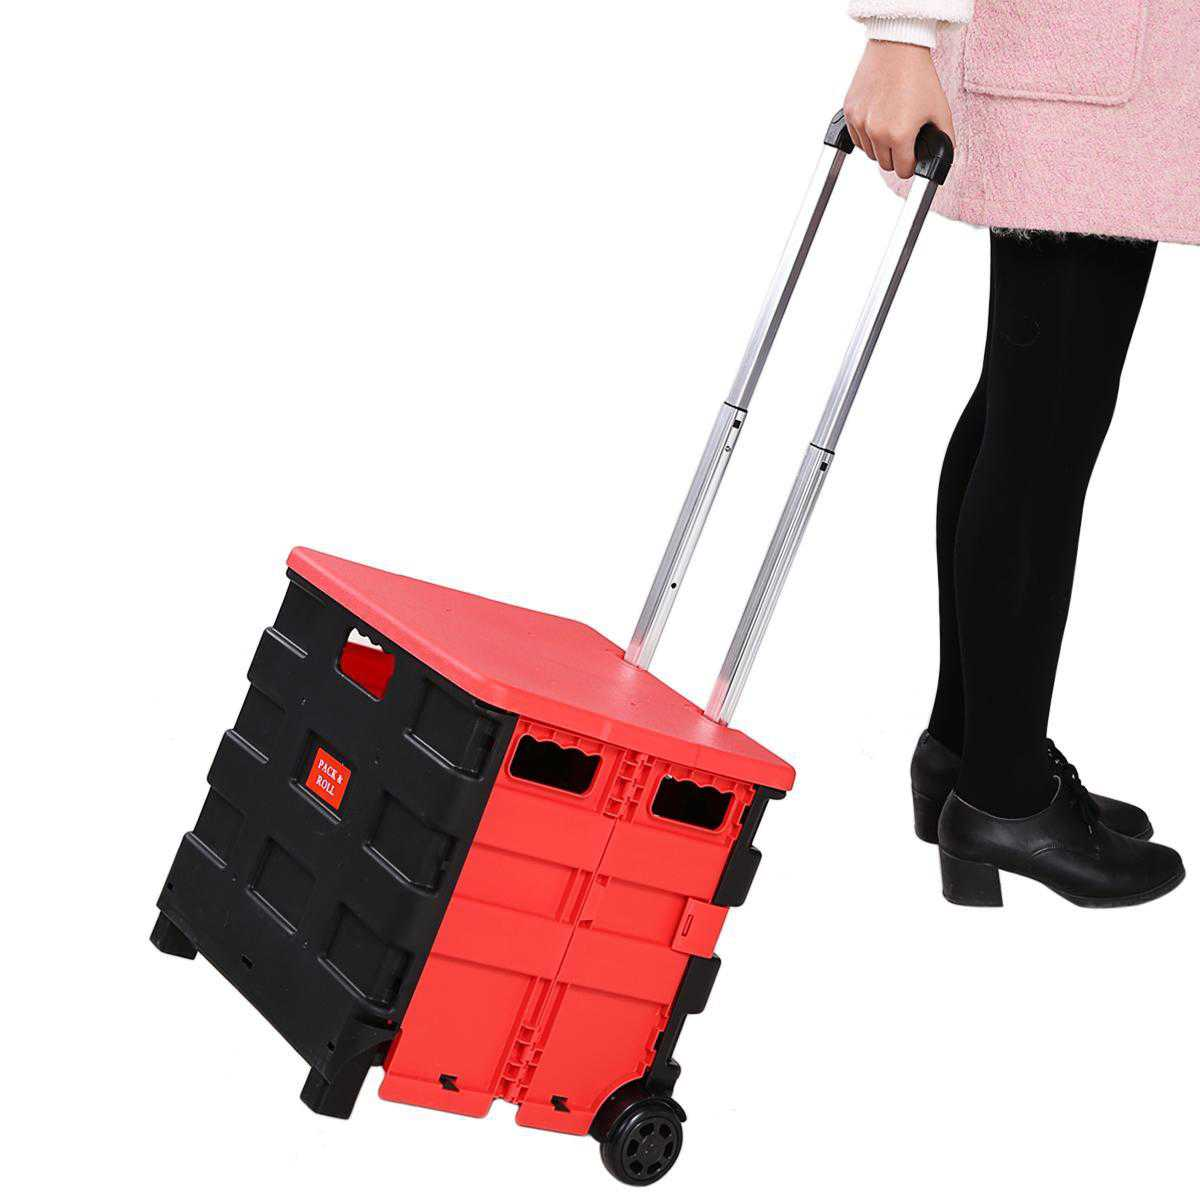 Ecobay Hand Cart Shopping Trolley with 2 Wheeled